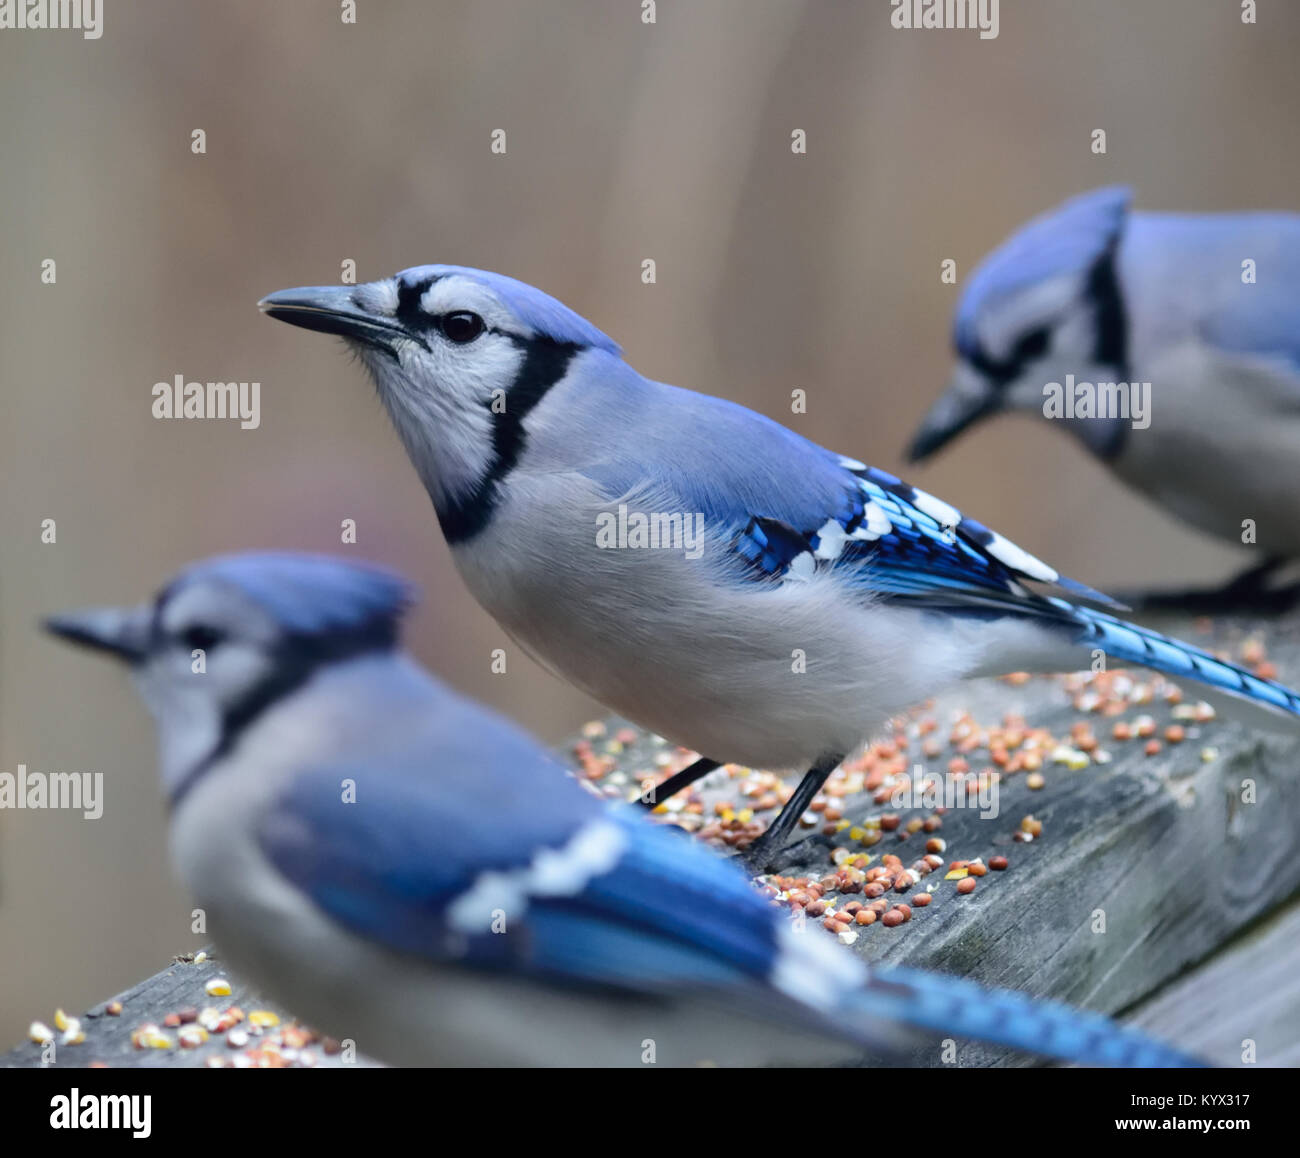 Blue Jay Nest Stock Photos & Blue Jay Nest Stock Images - Alamy